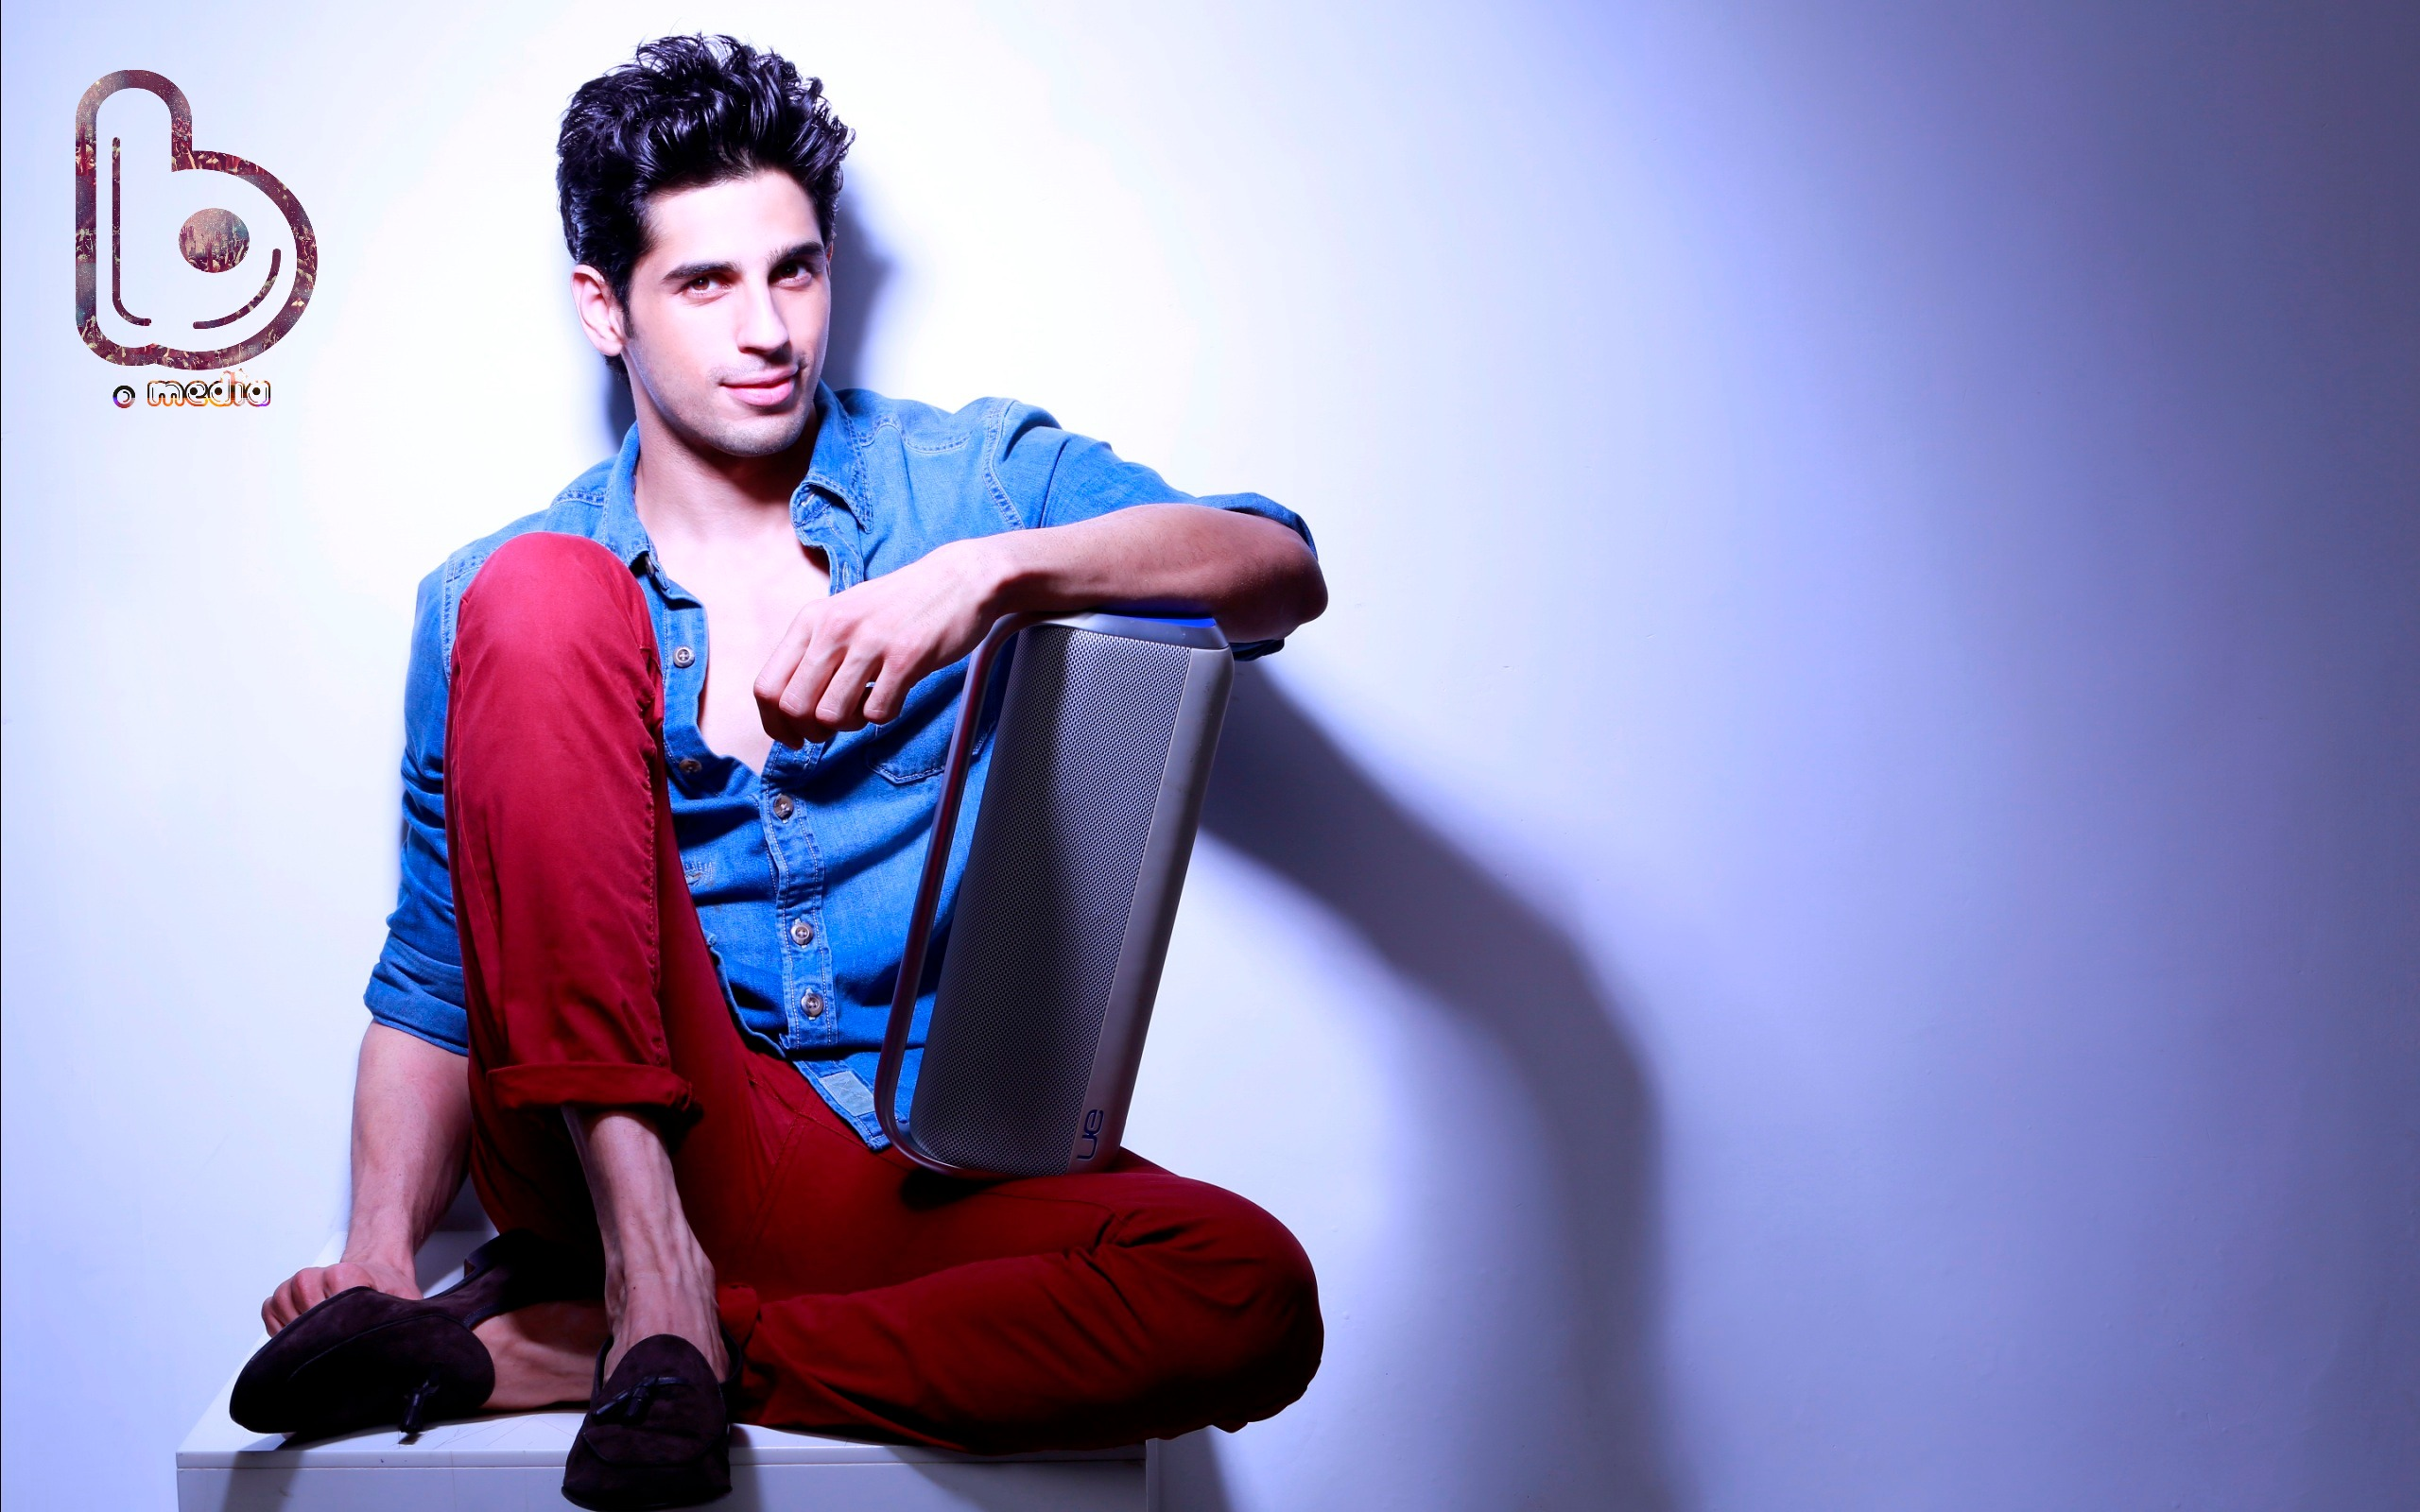 Sidharth Malhotra just posted a pic of his first ever photoshoot!